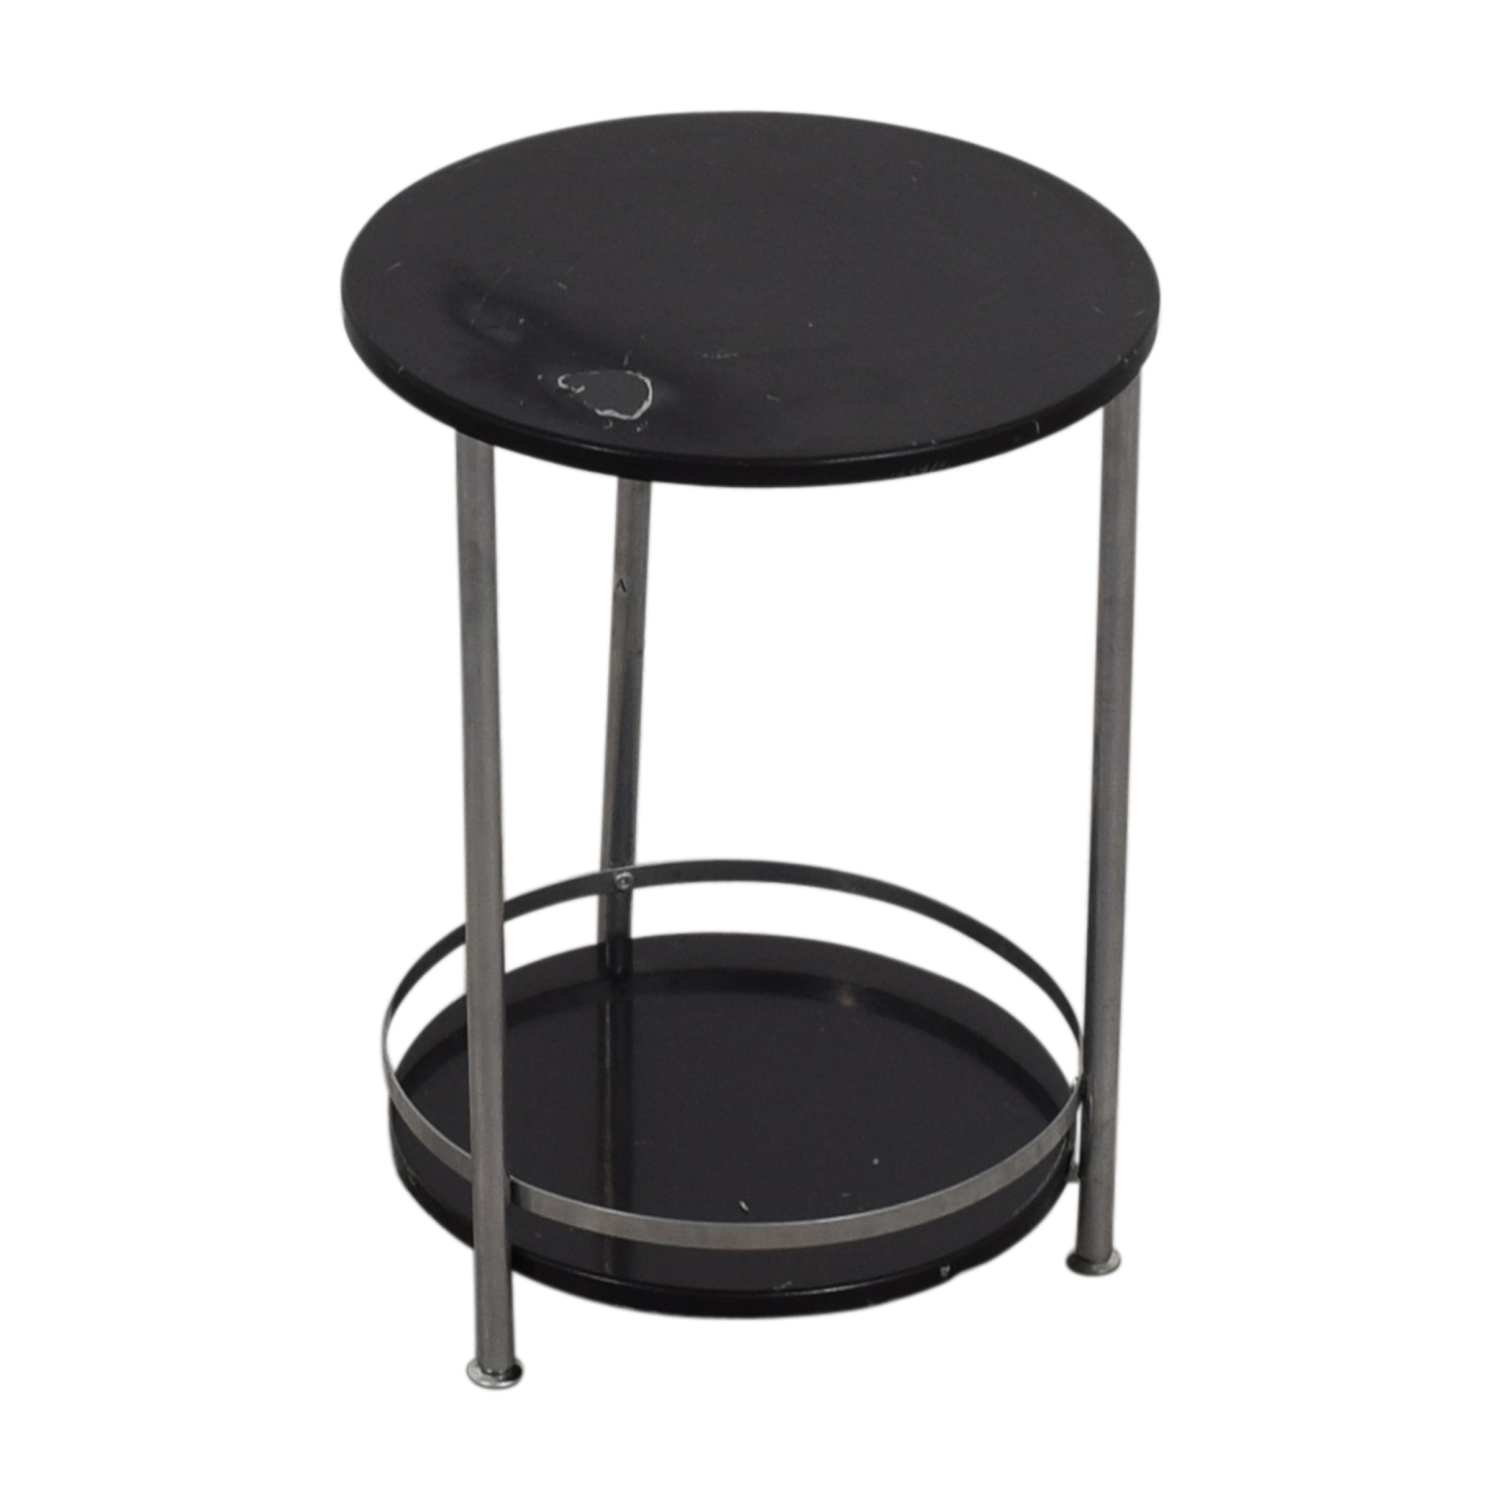 Round Black and Chrome End table dimensions